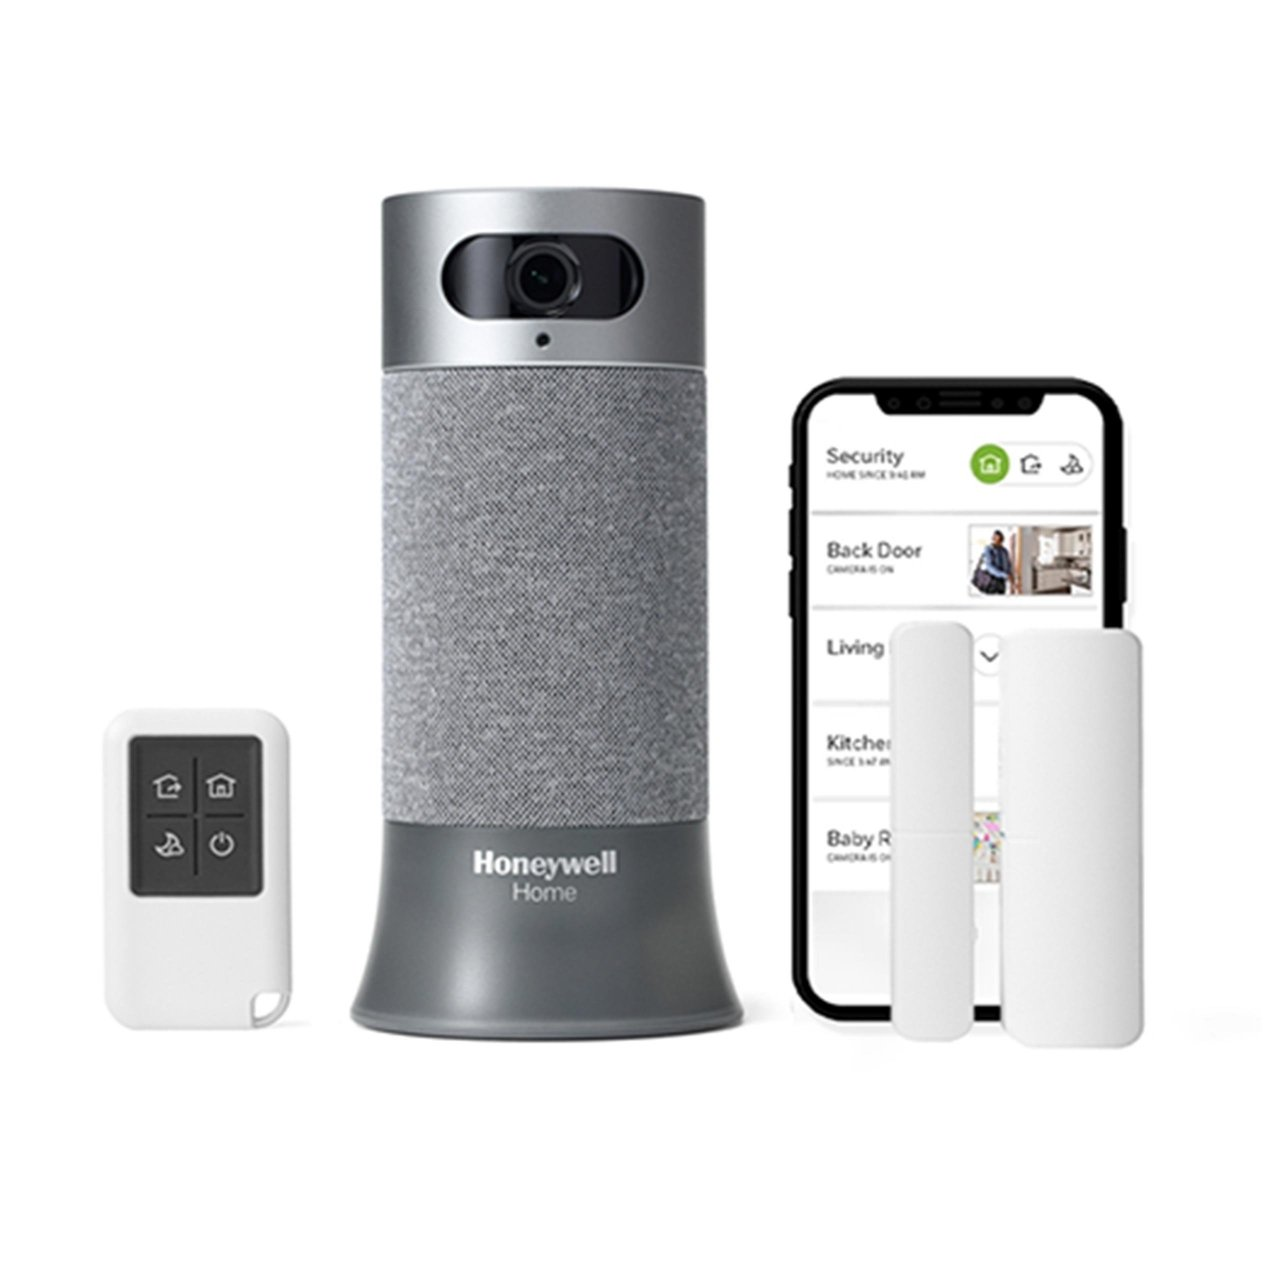 Honeywell Home Smart Home Security System